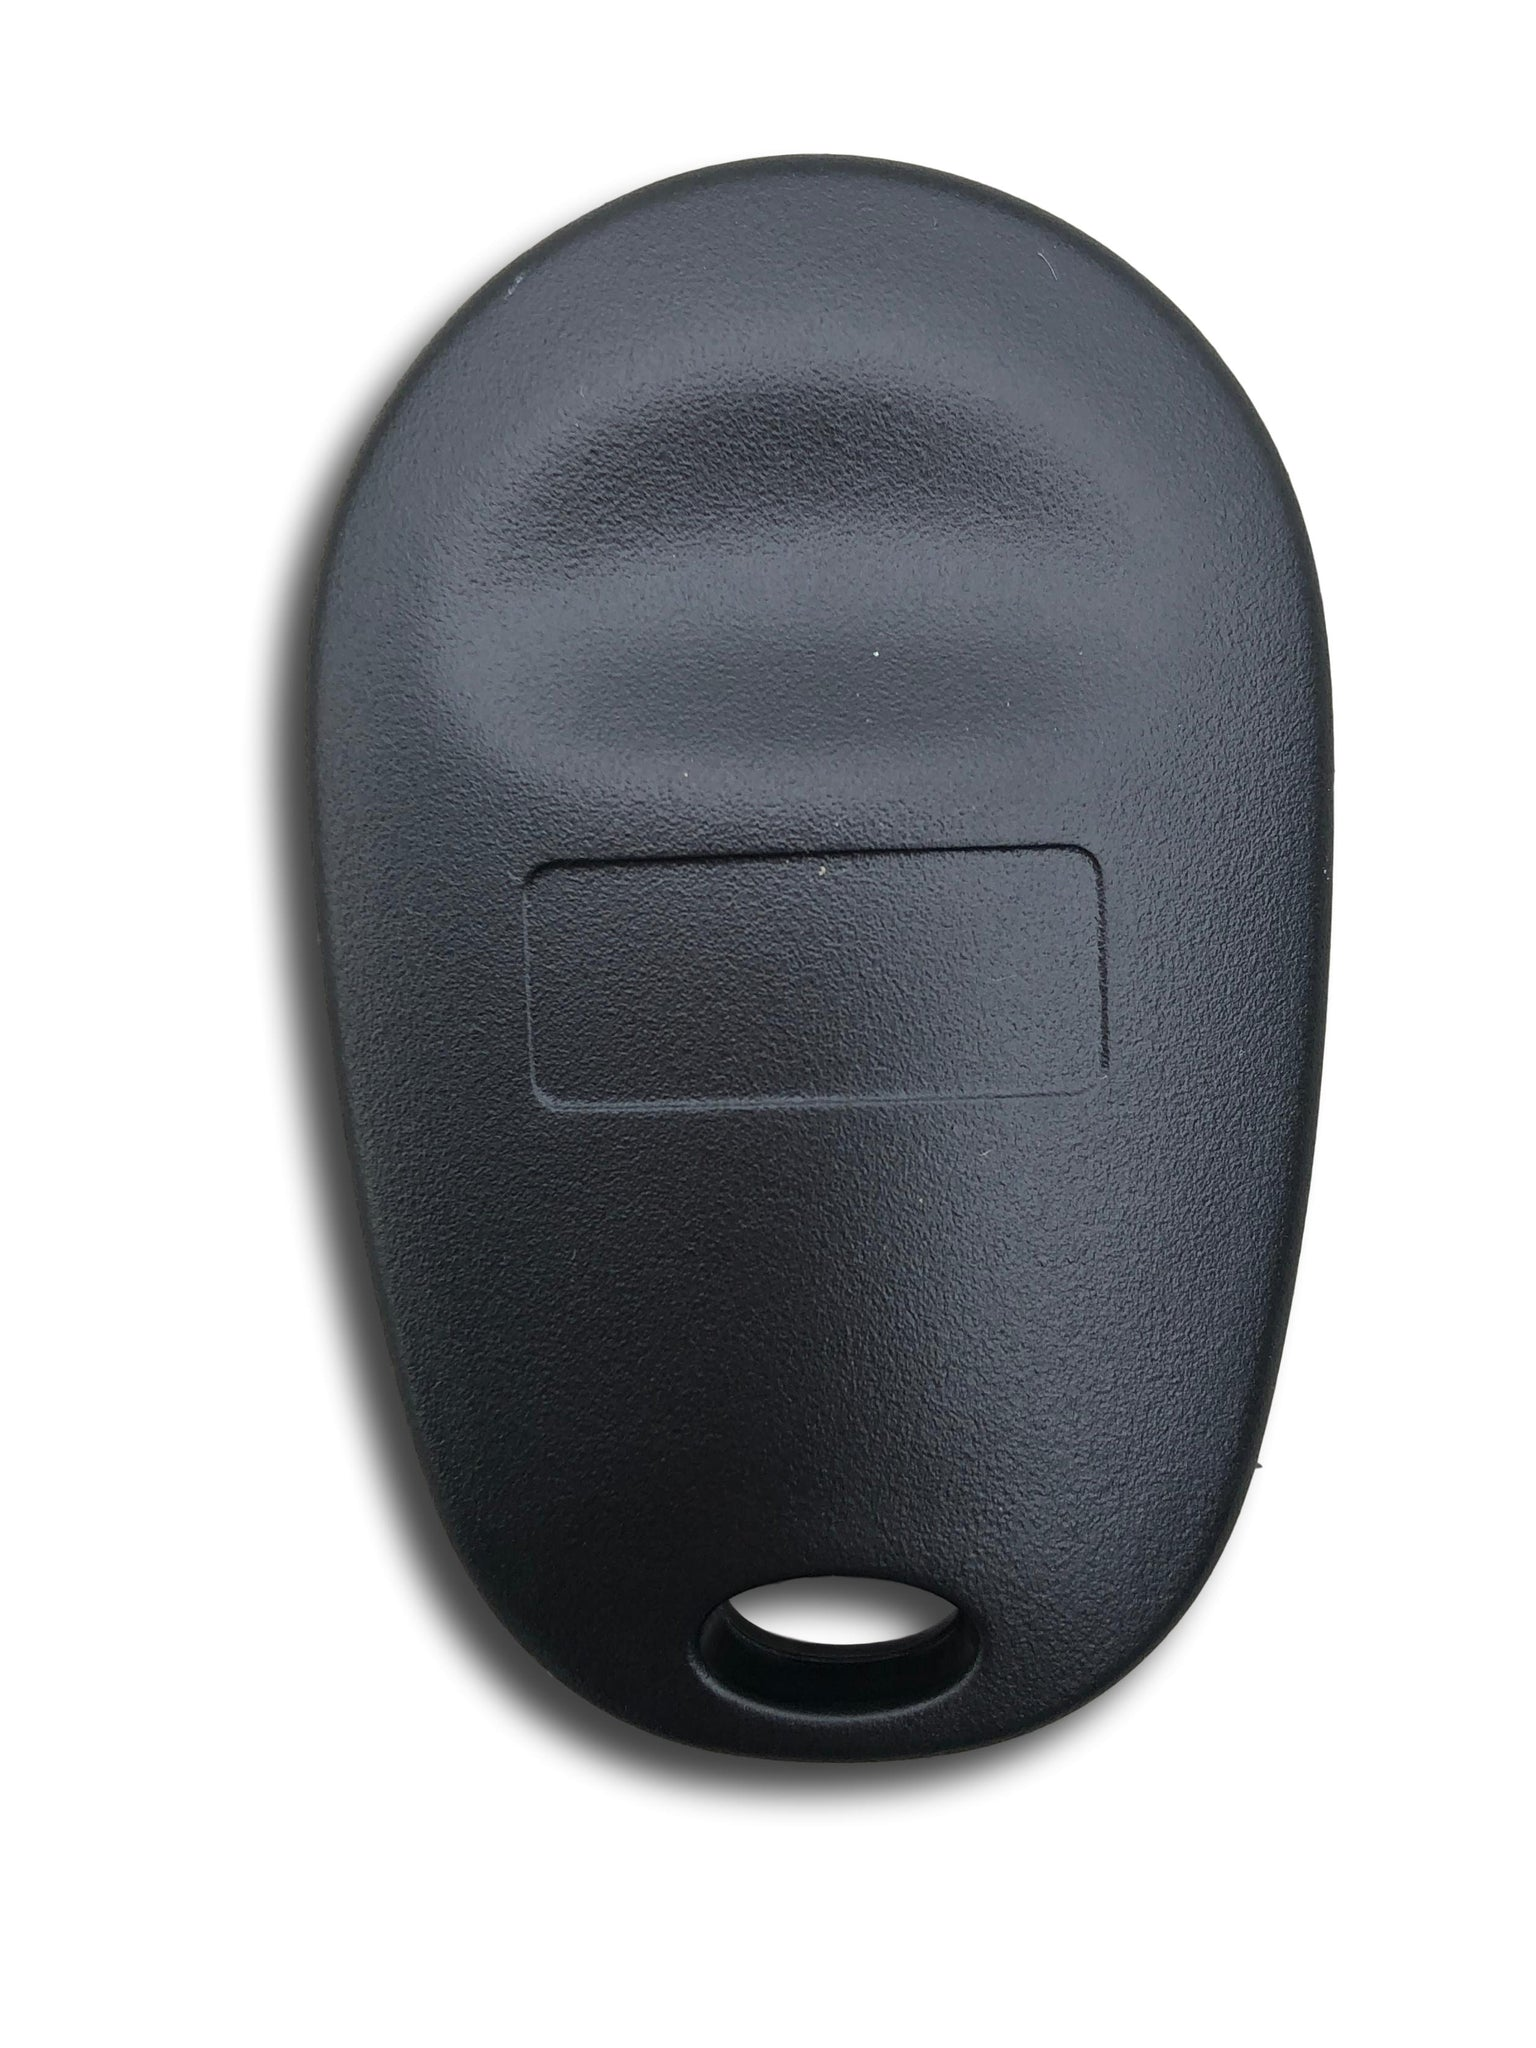 Owner Programmable 4 Button Keyless Entry Remote Fob For Toyota Sienna